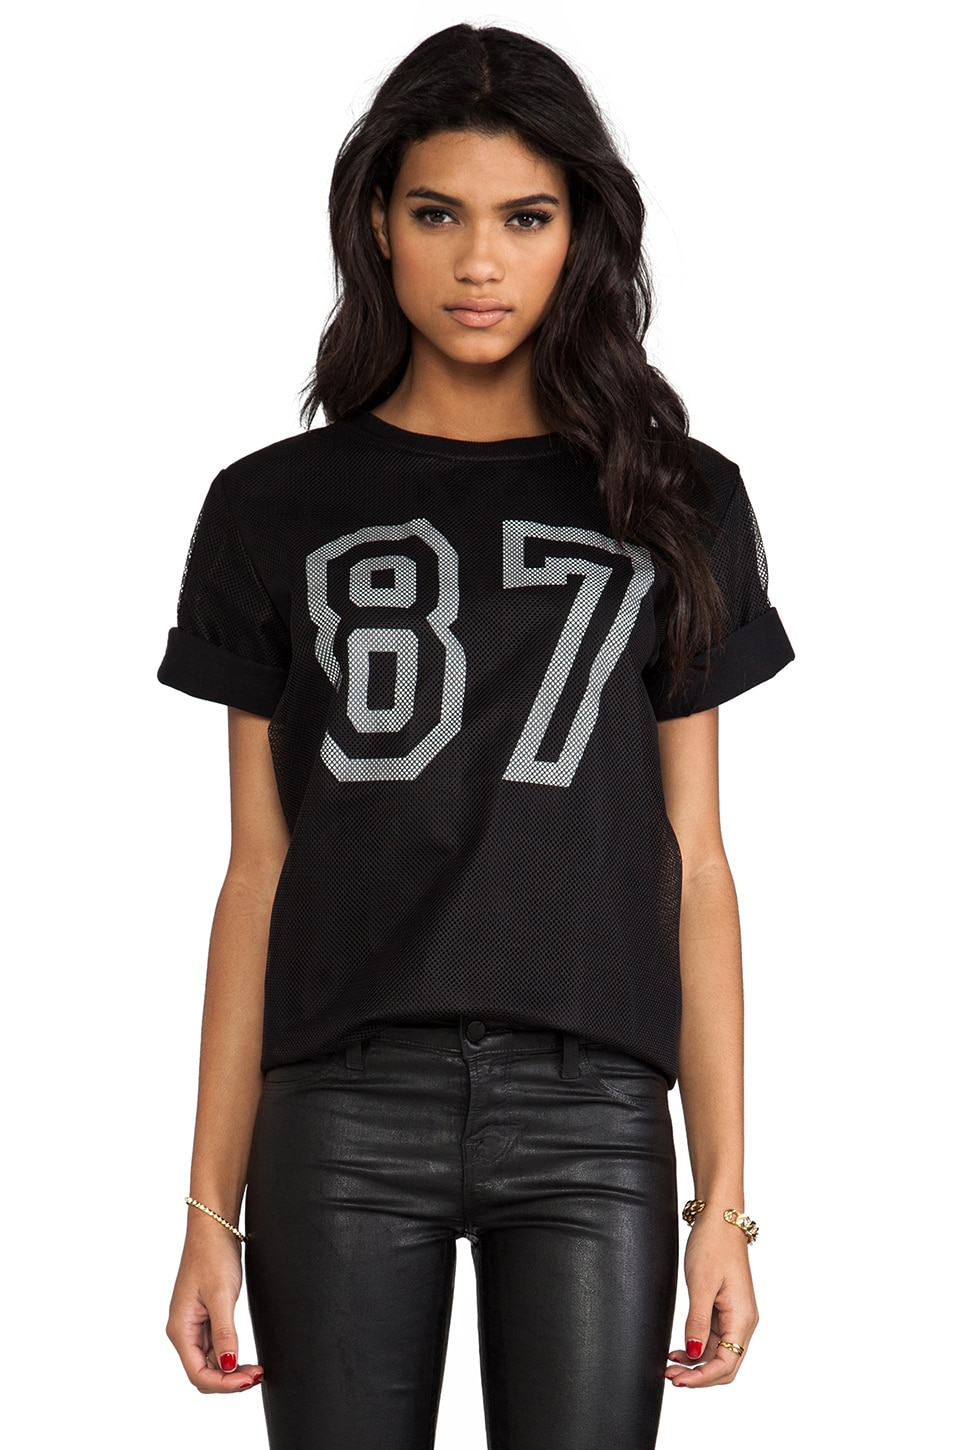 This is a Love Song Bad Football Jersey Tee in Black/White